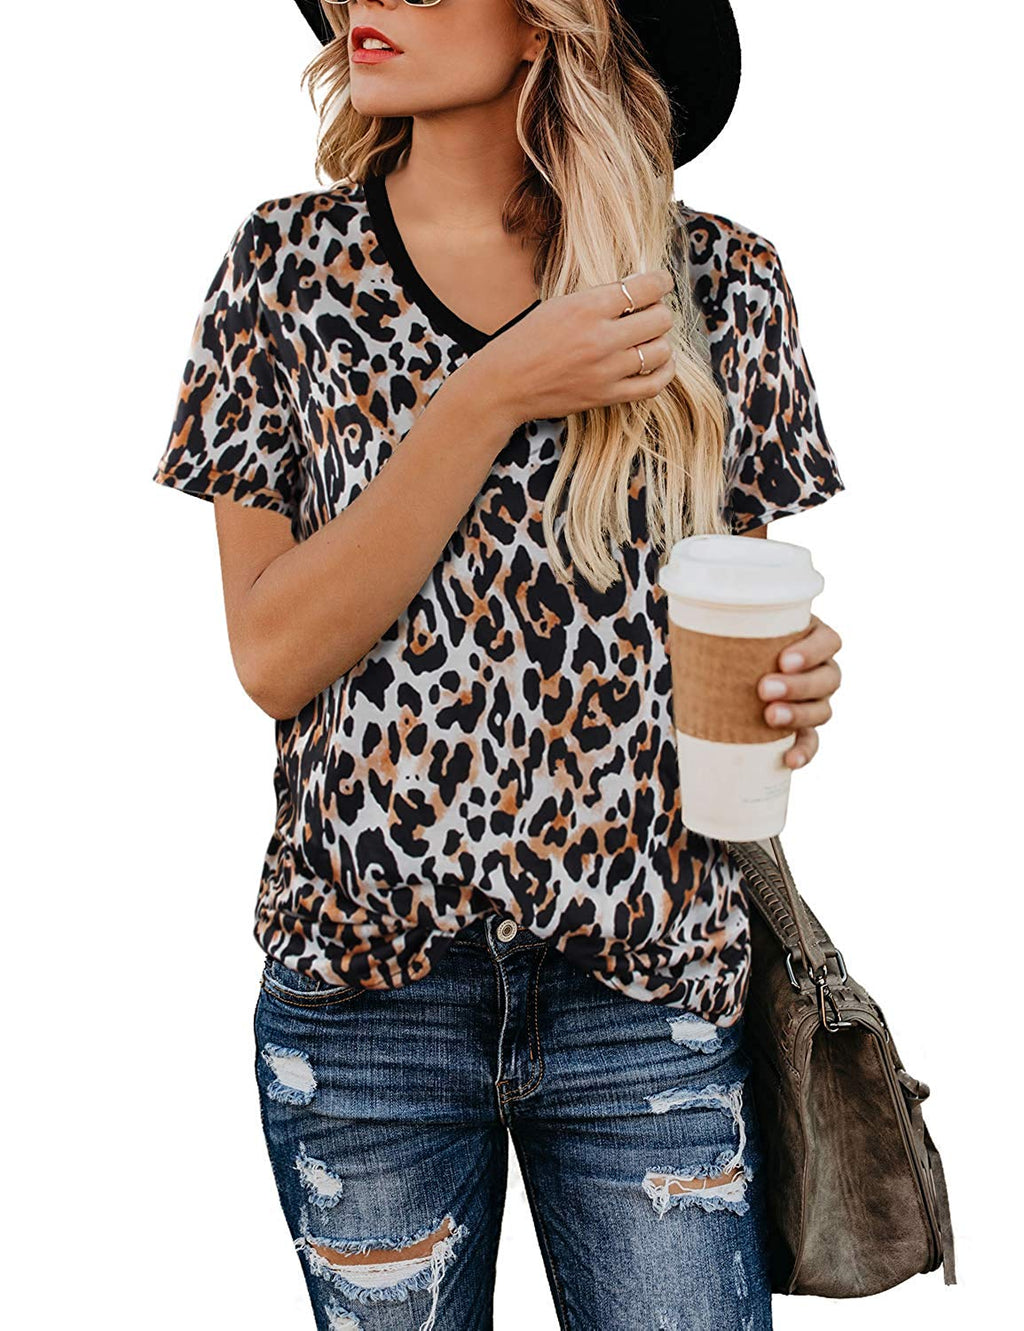 Women's casual leopard top short-sleeved soft shirt